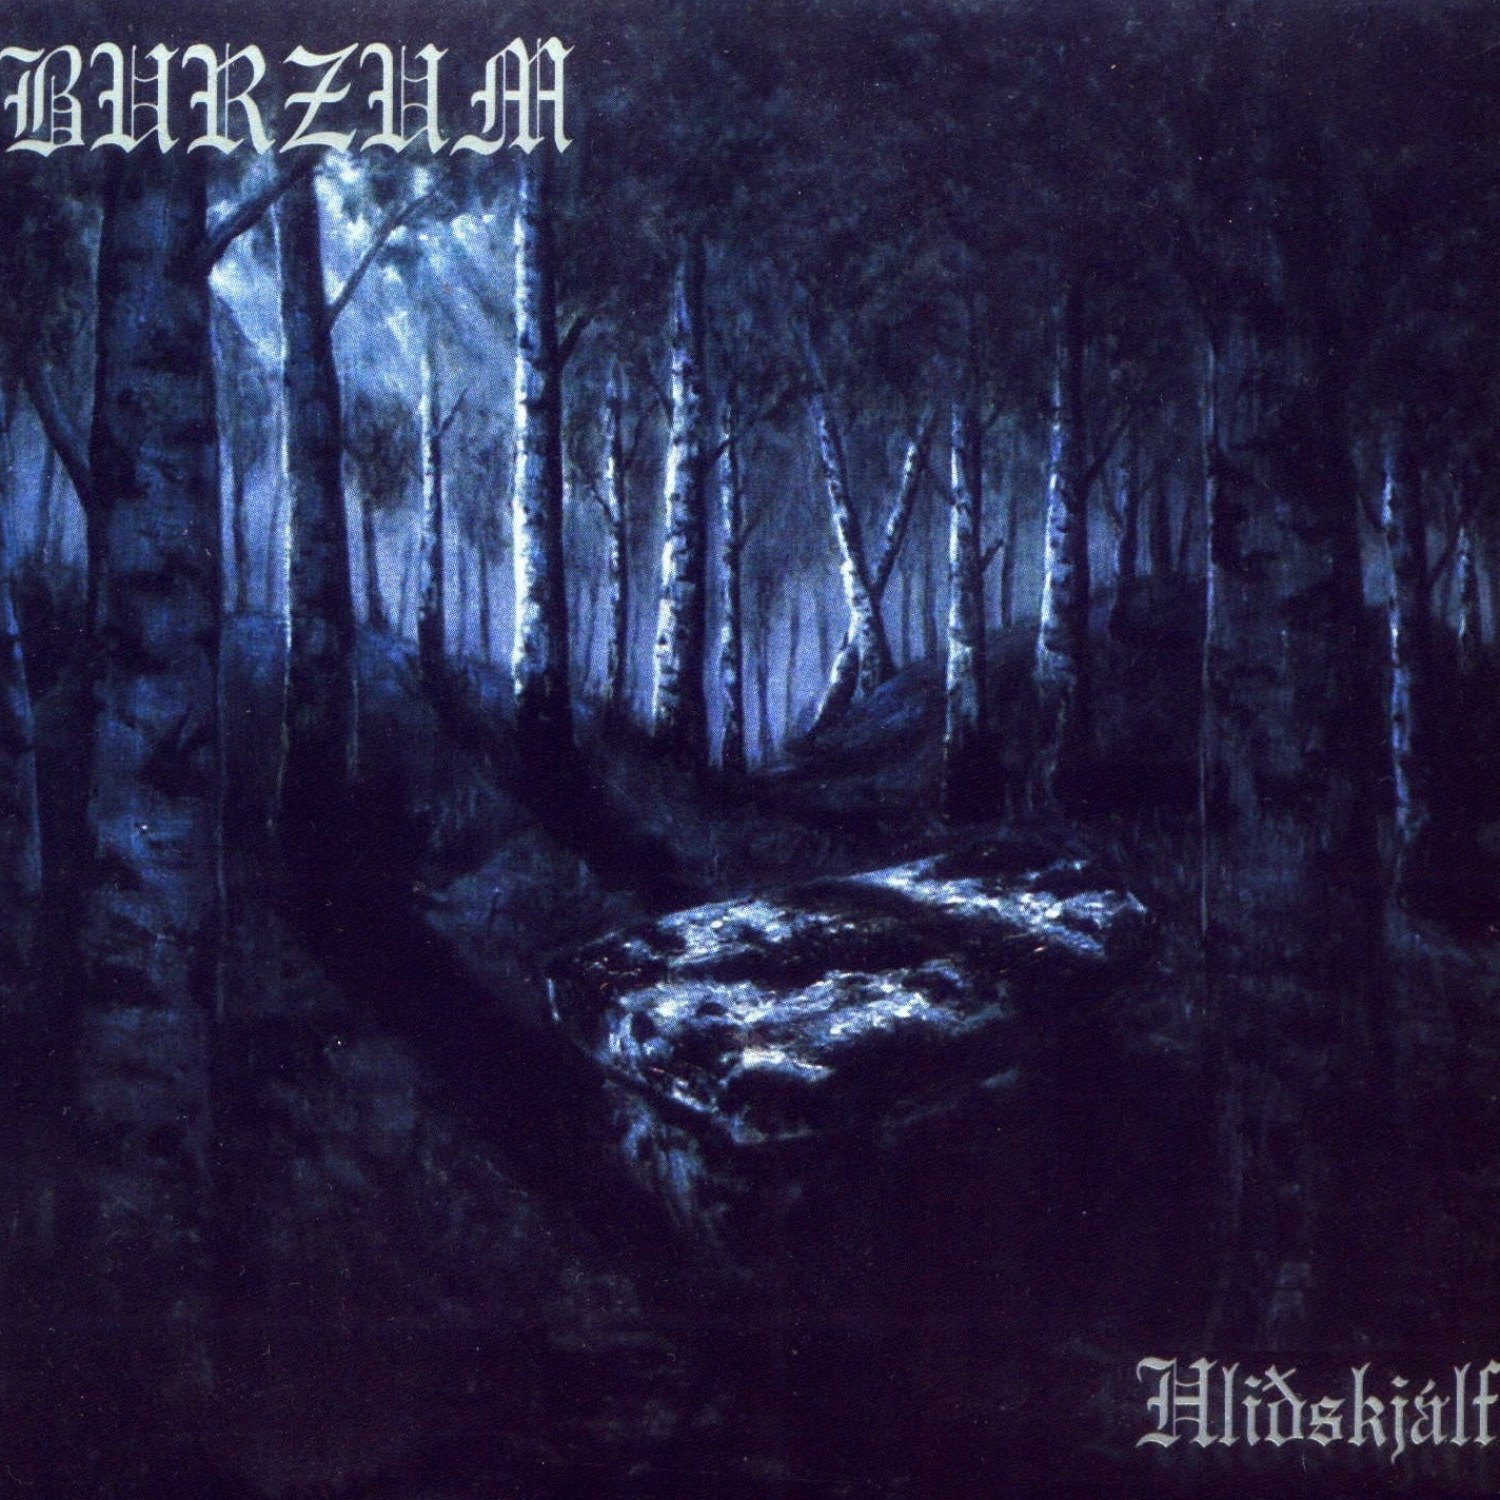 Review for Burzum - Hliðskjálf